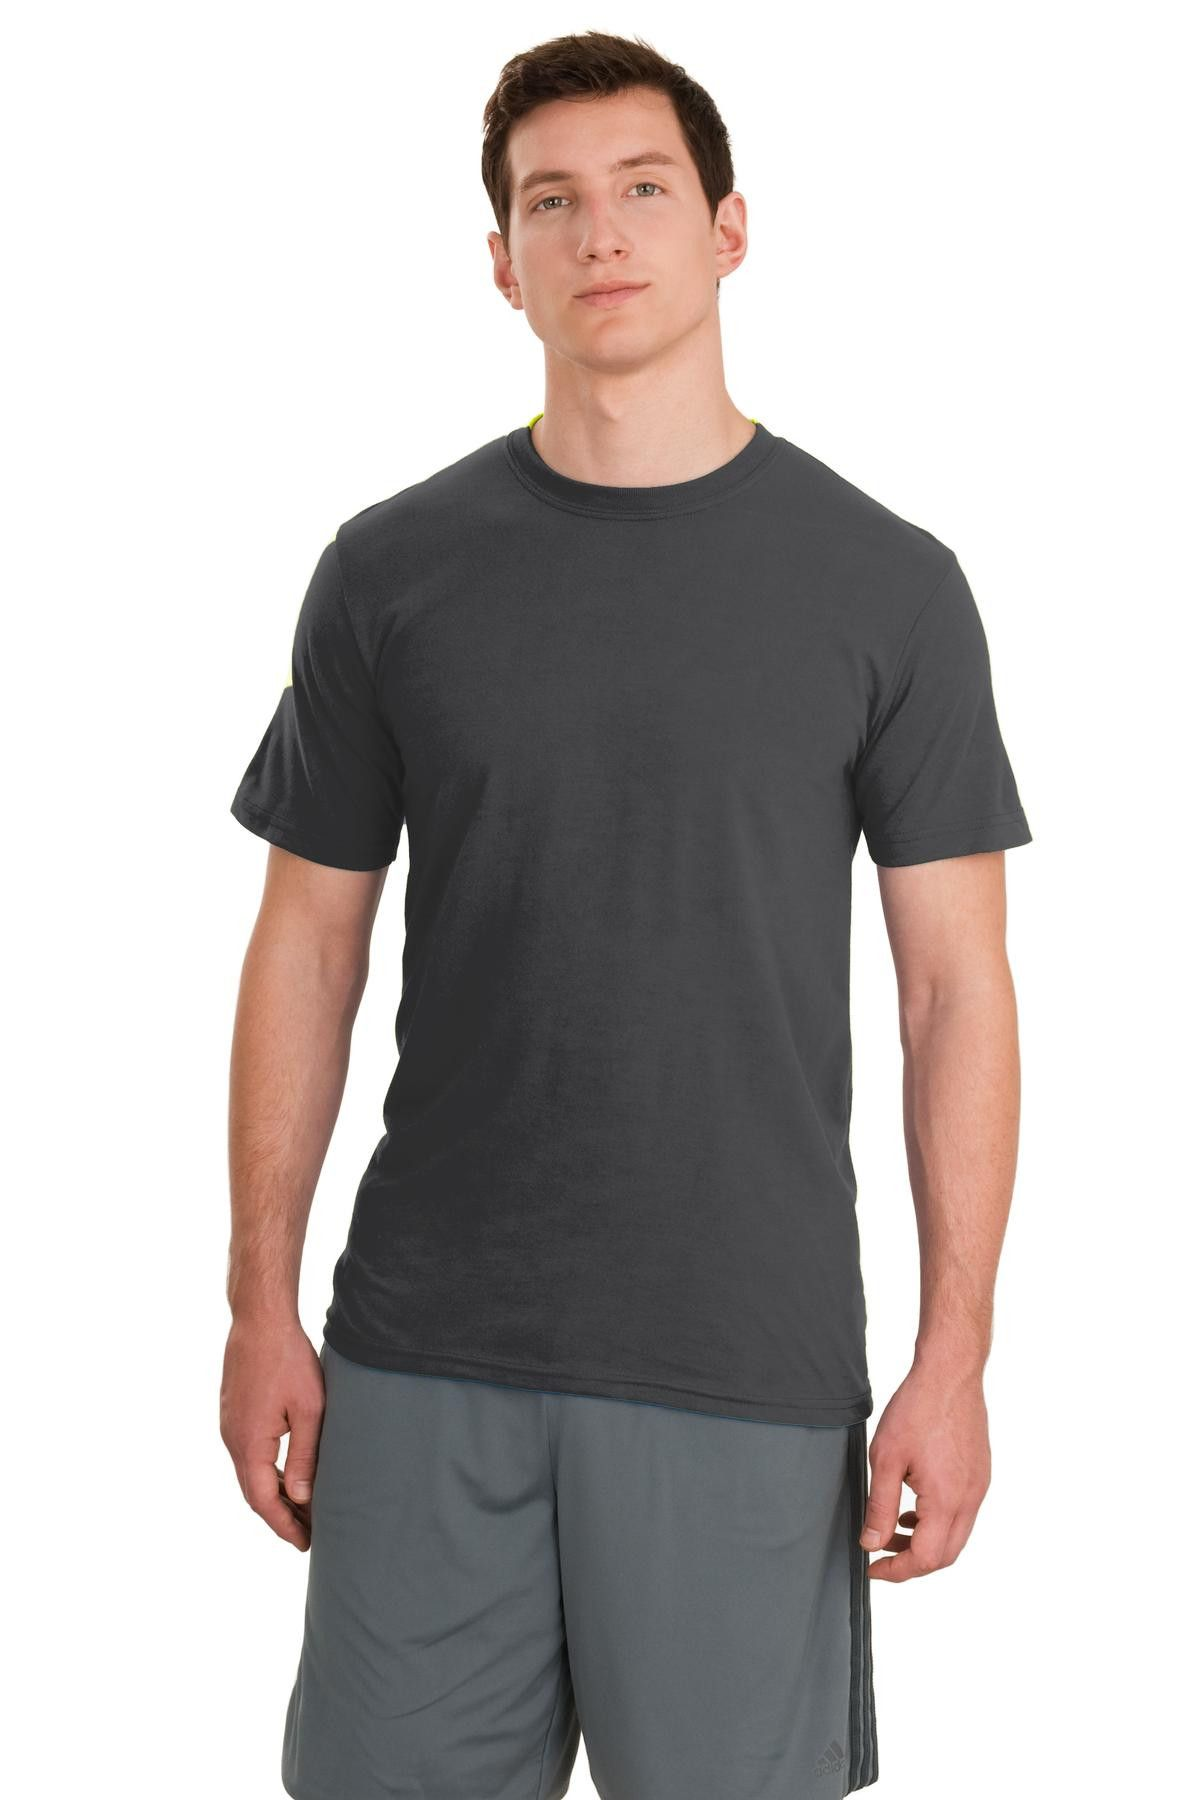 Jerzees Mens polyester sport t-shirt Charcoal Grey